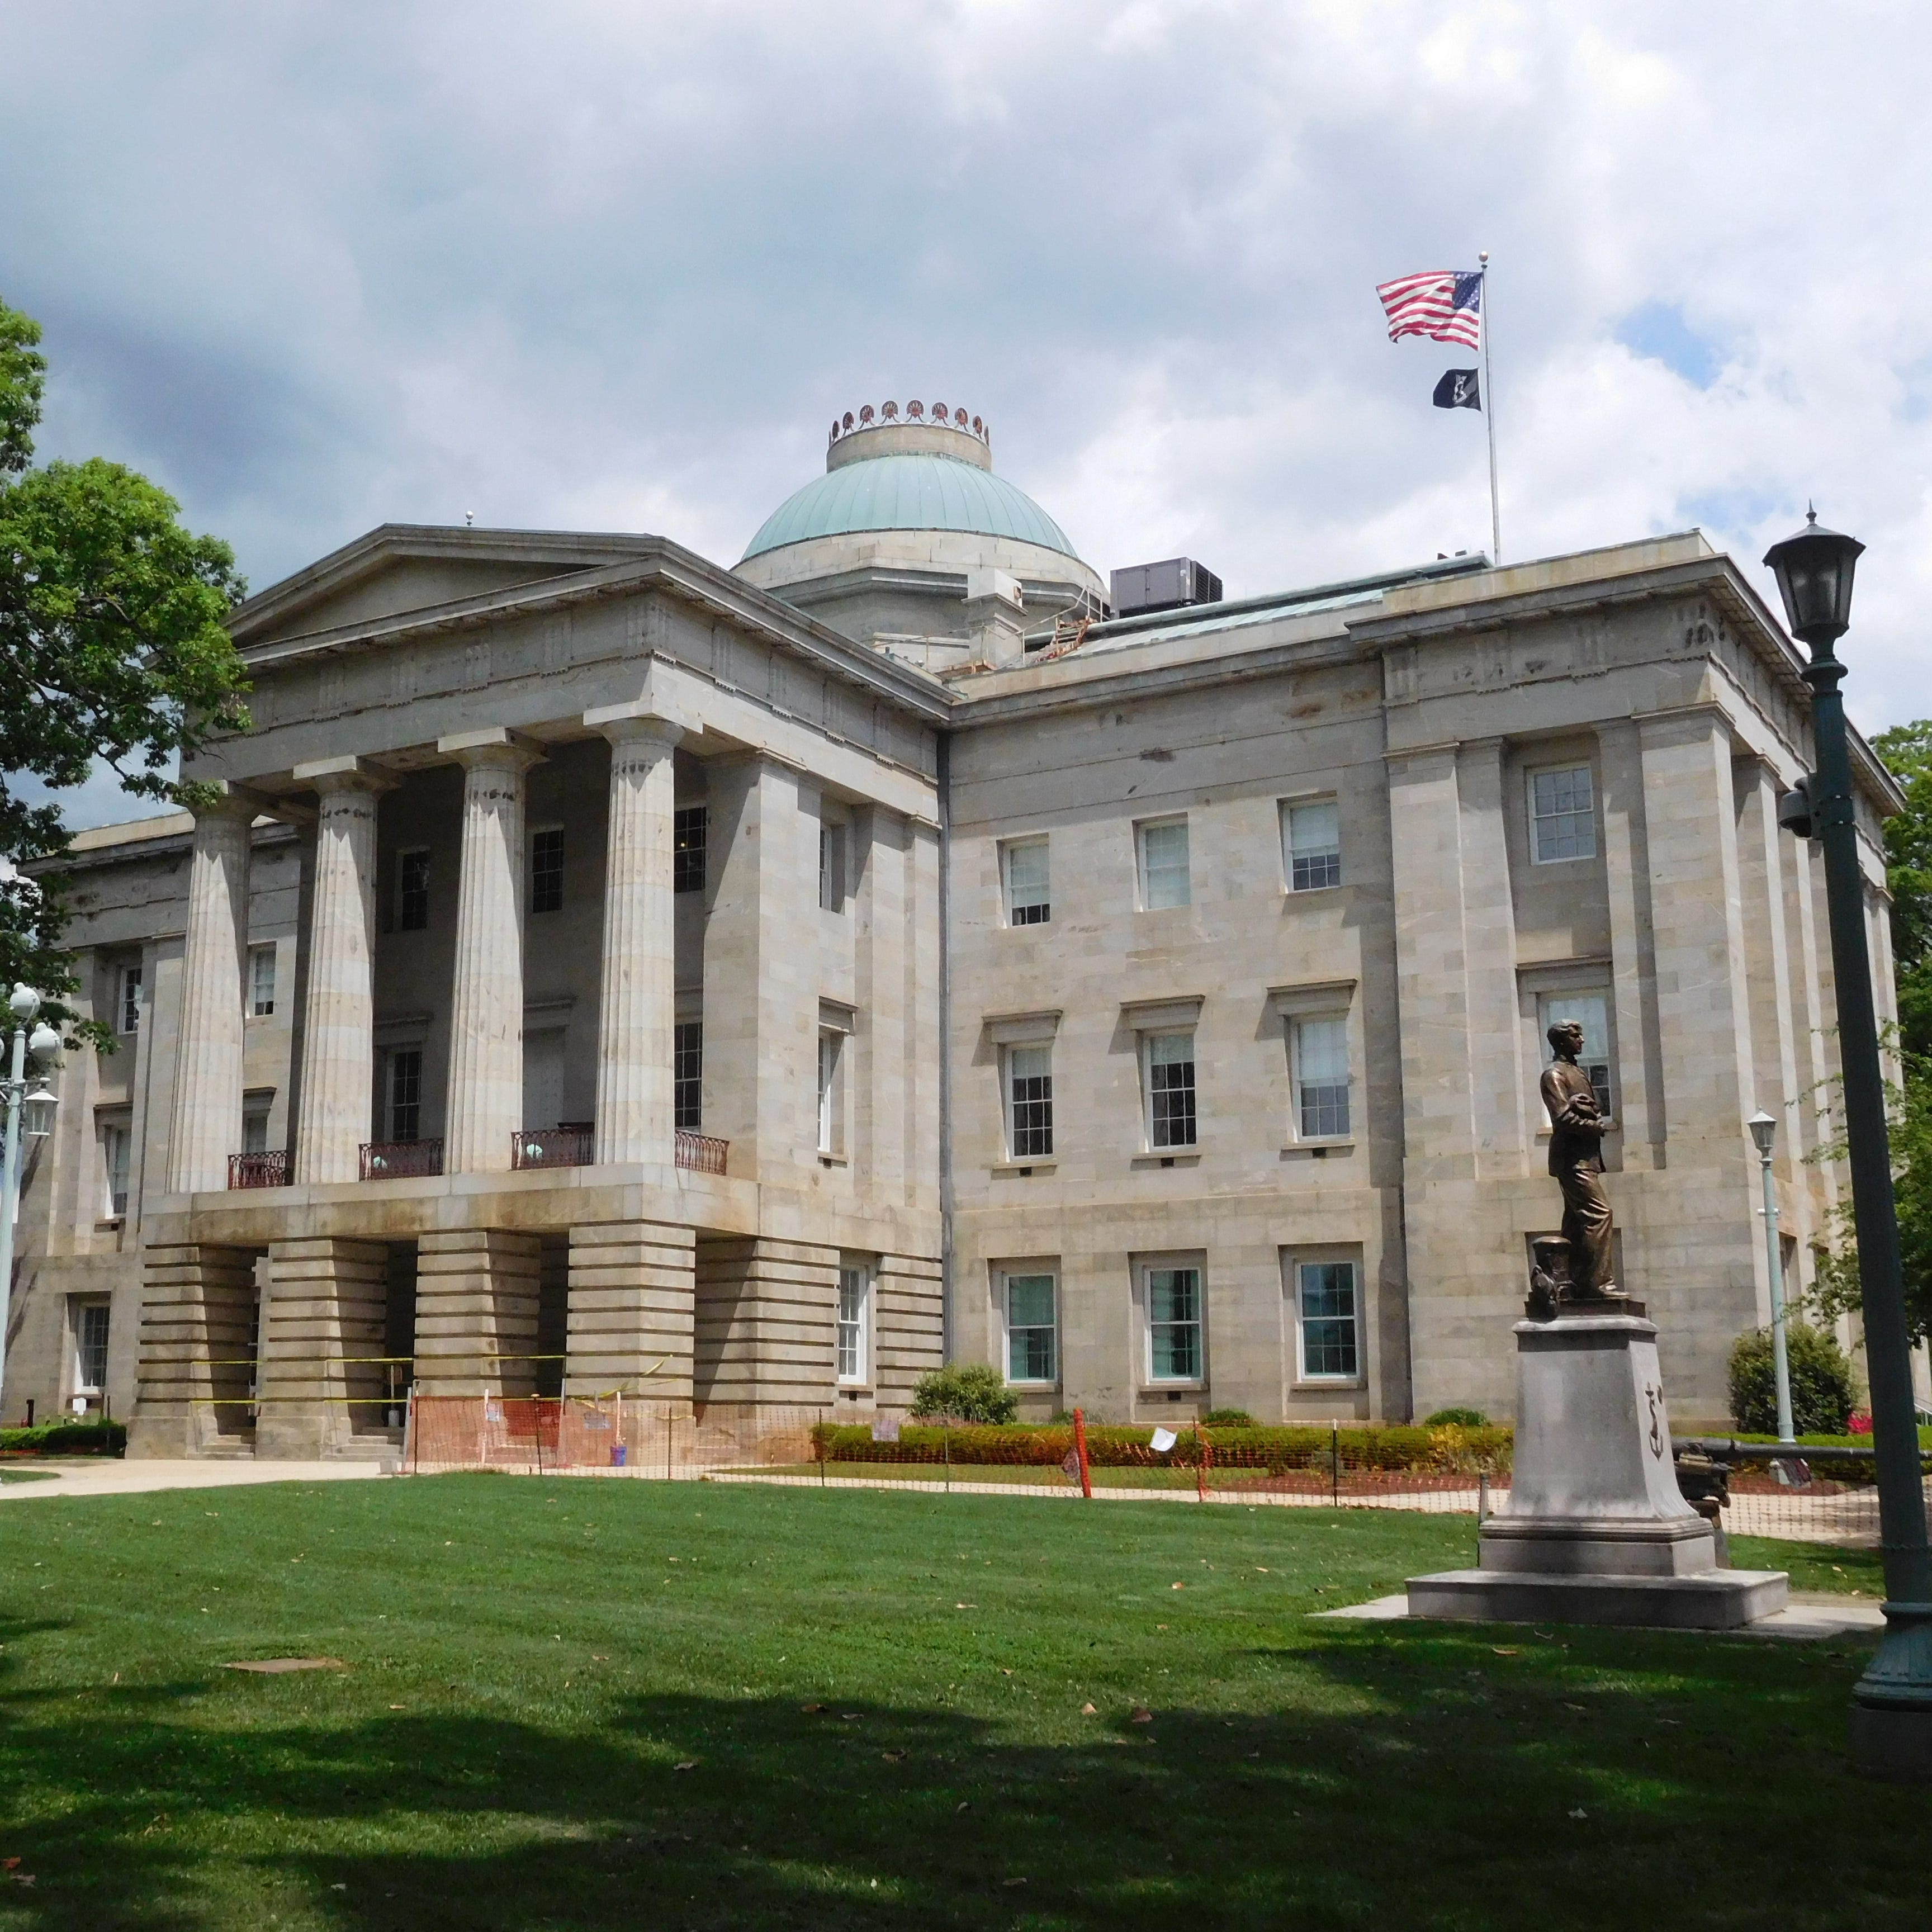 The state Capitol building in Raleigh.